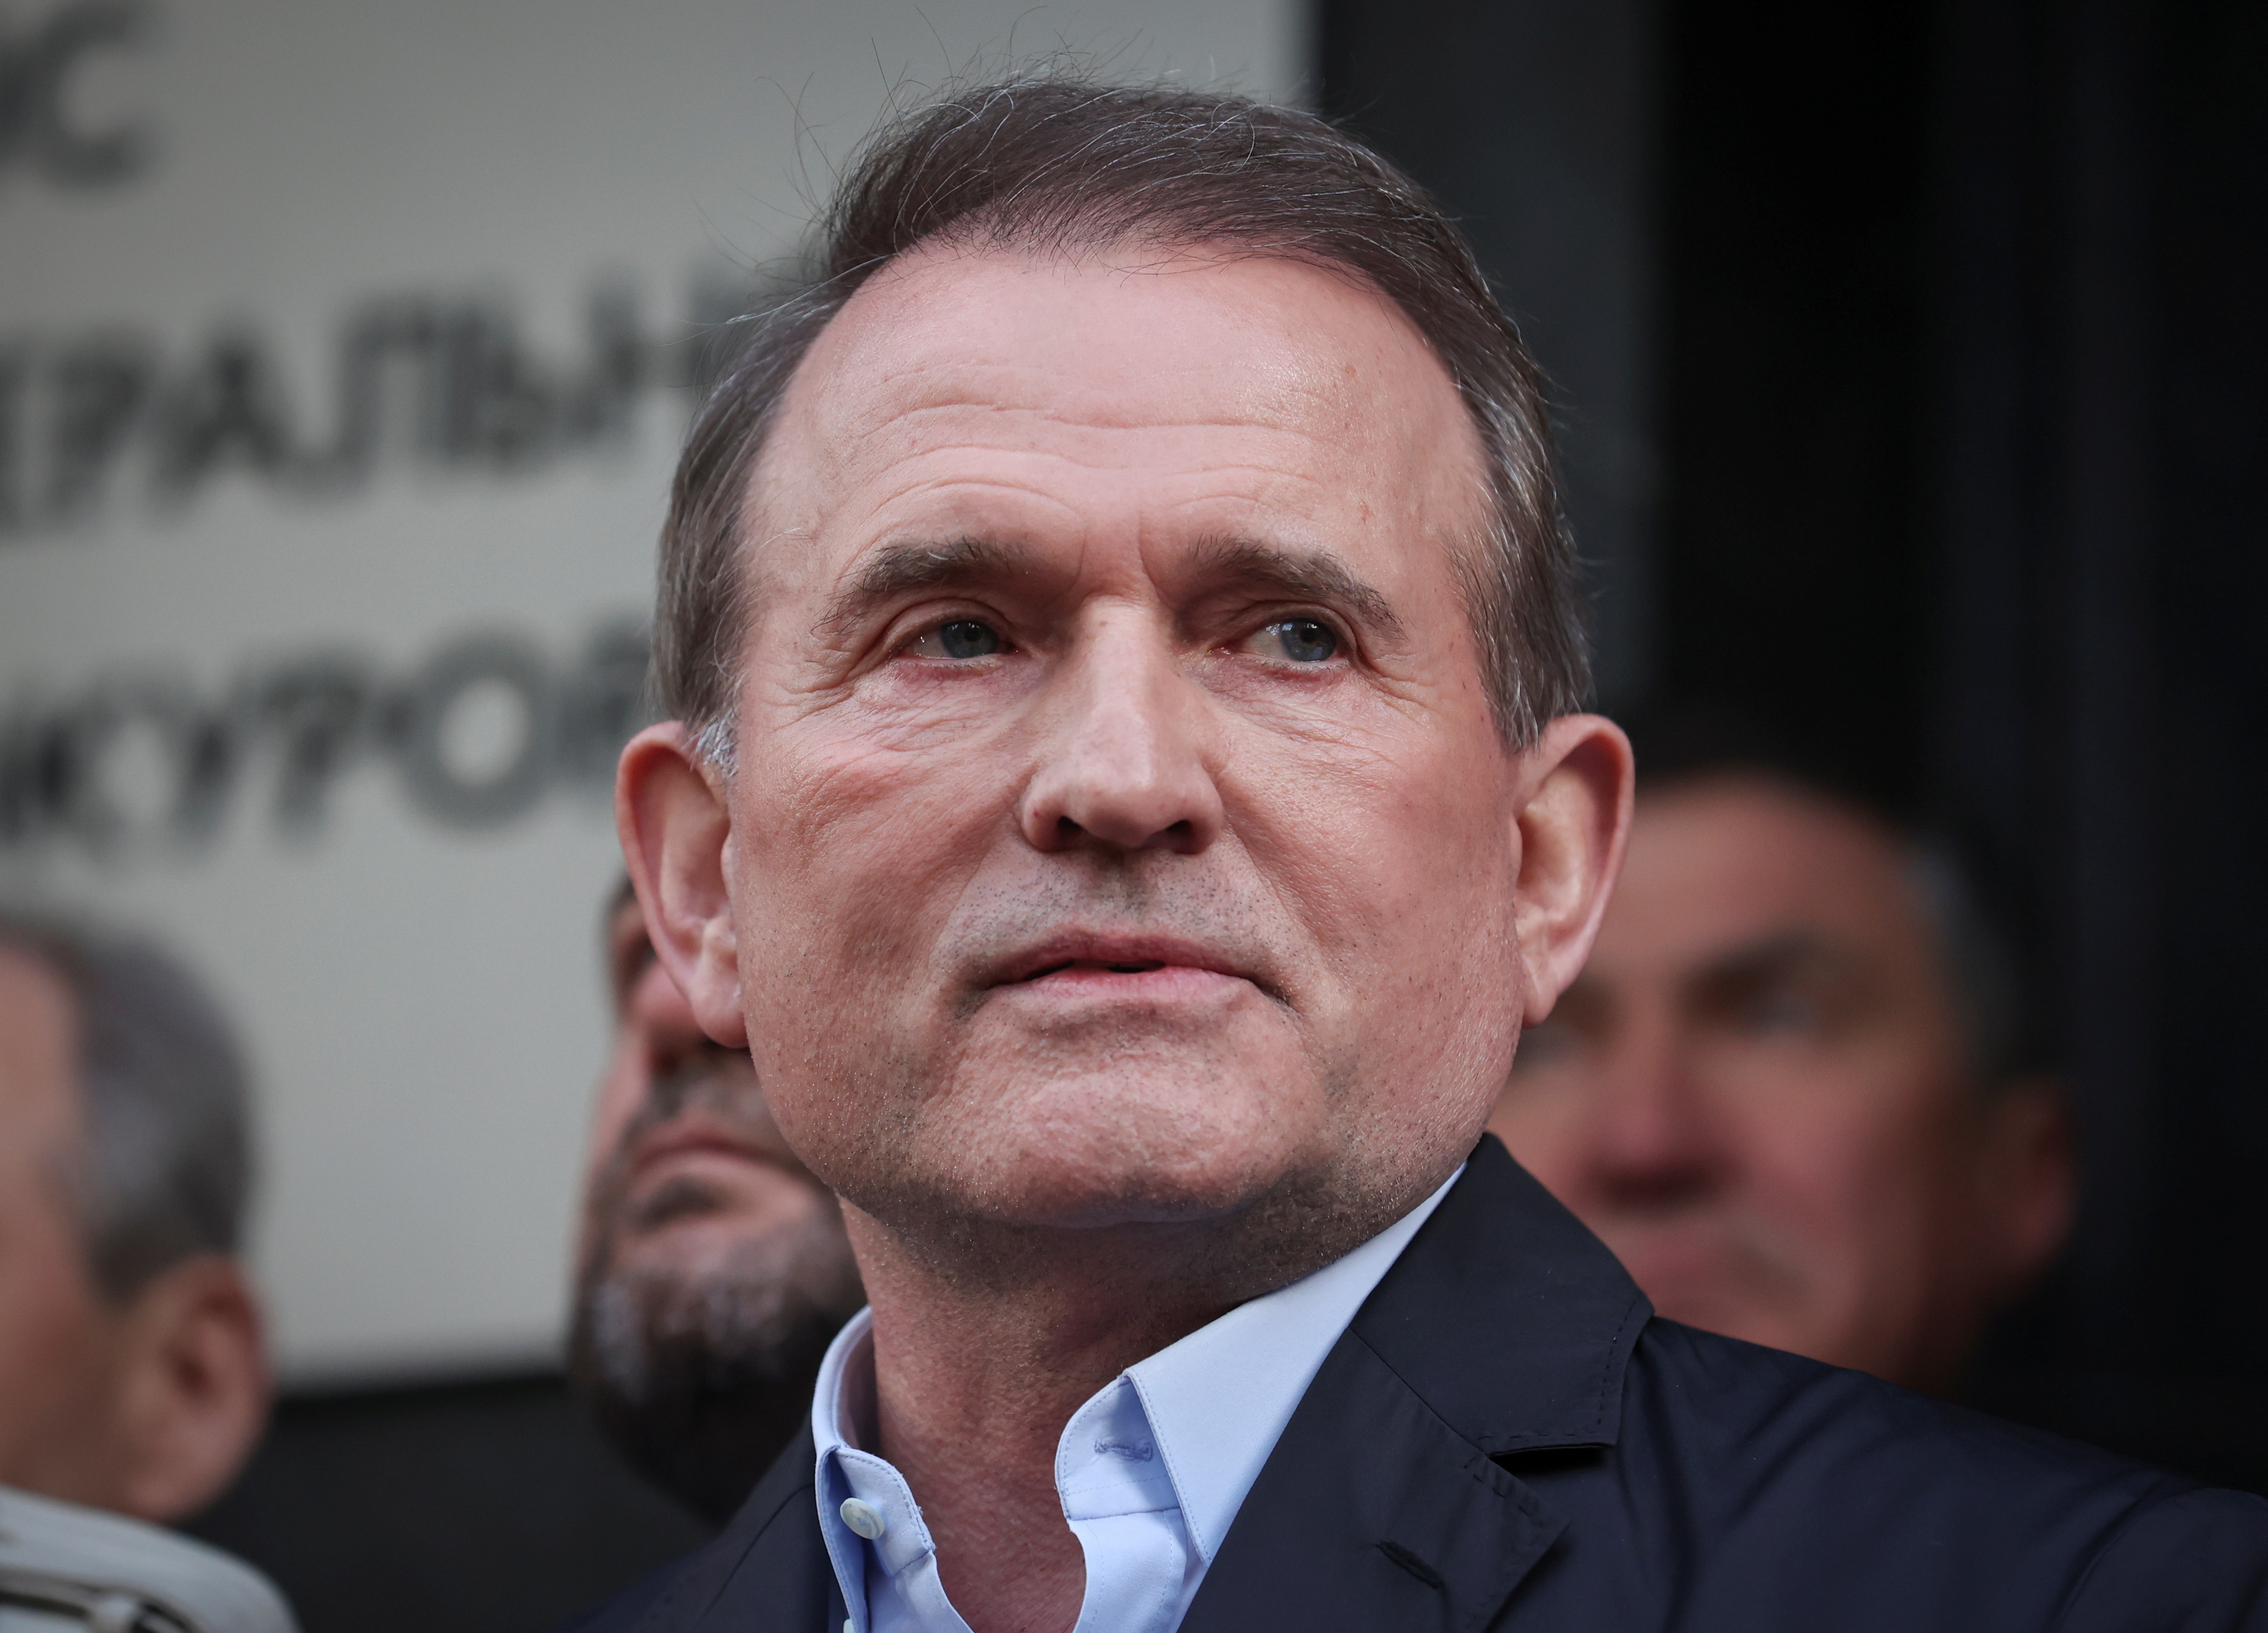 Viktor Medvedchuk, leader of Opposition Platform - For Life political party, speaks with journalists outside the office of the Prosecutor General in Kyiv, Ukraine May 12, 2021. REUTERS/Serhii Nuzhnenko